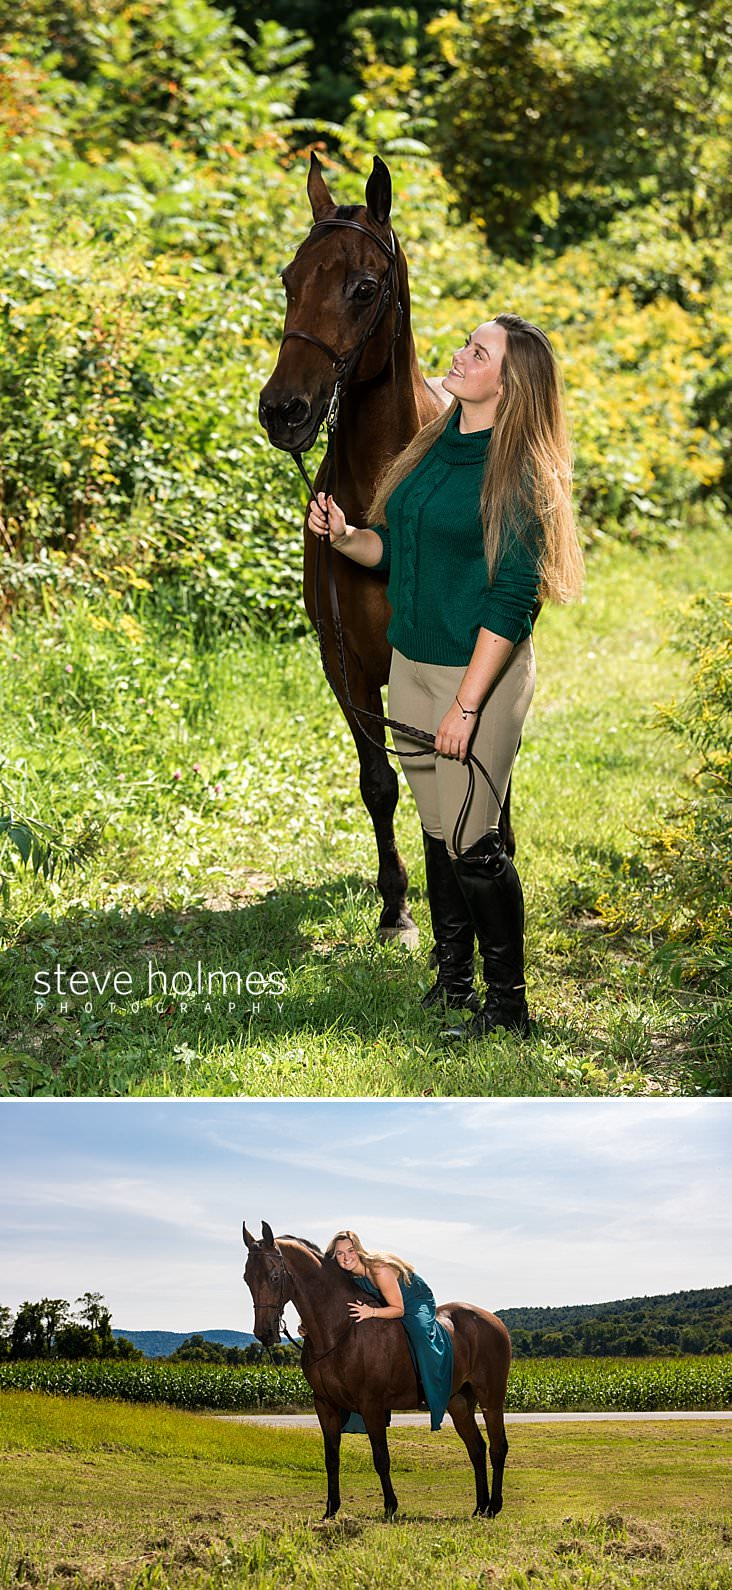 04_Young woman stands looking at her horse on a path surrounded by green.jpg